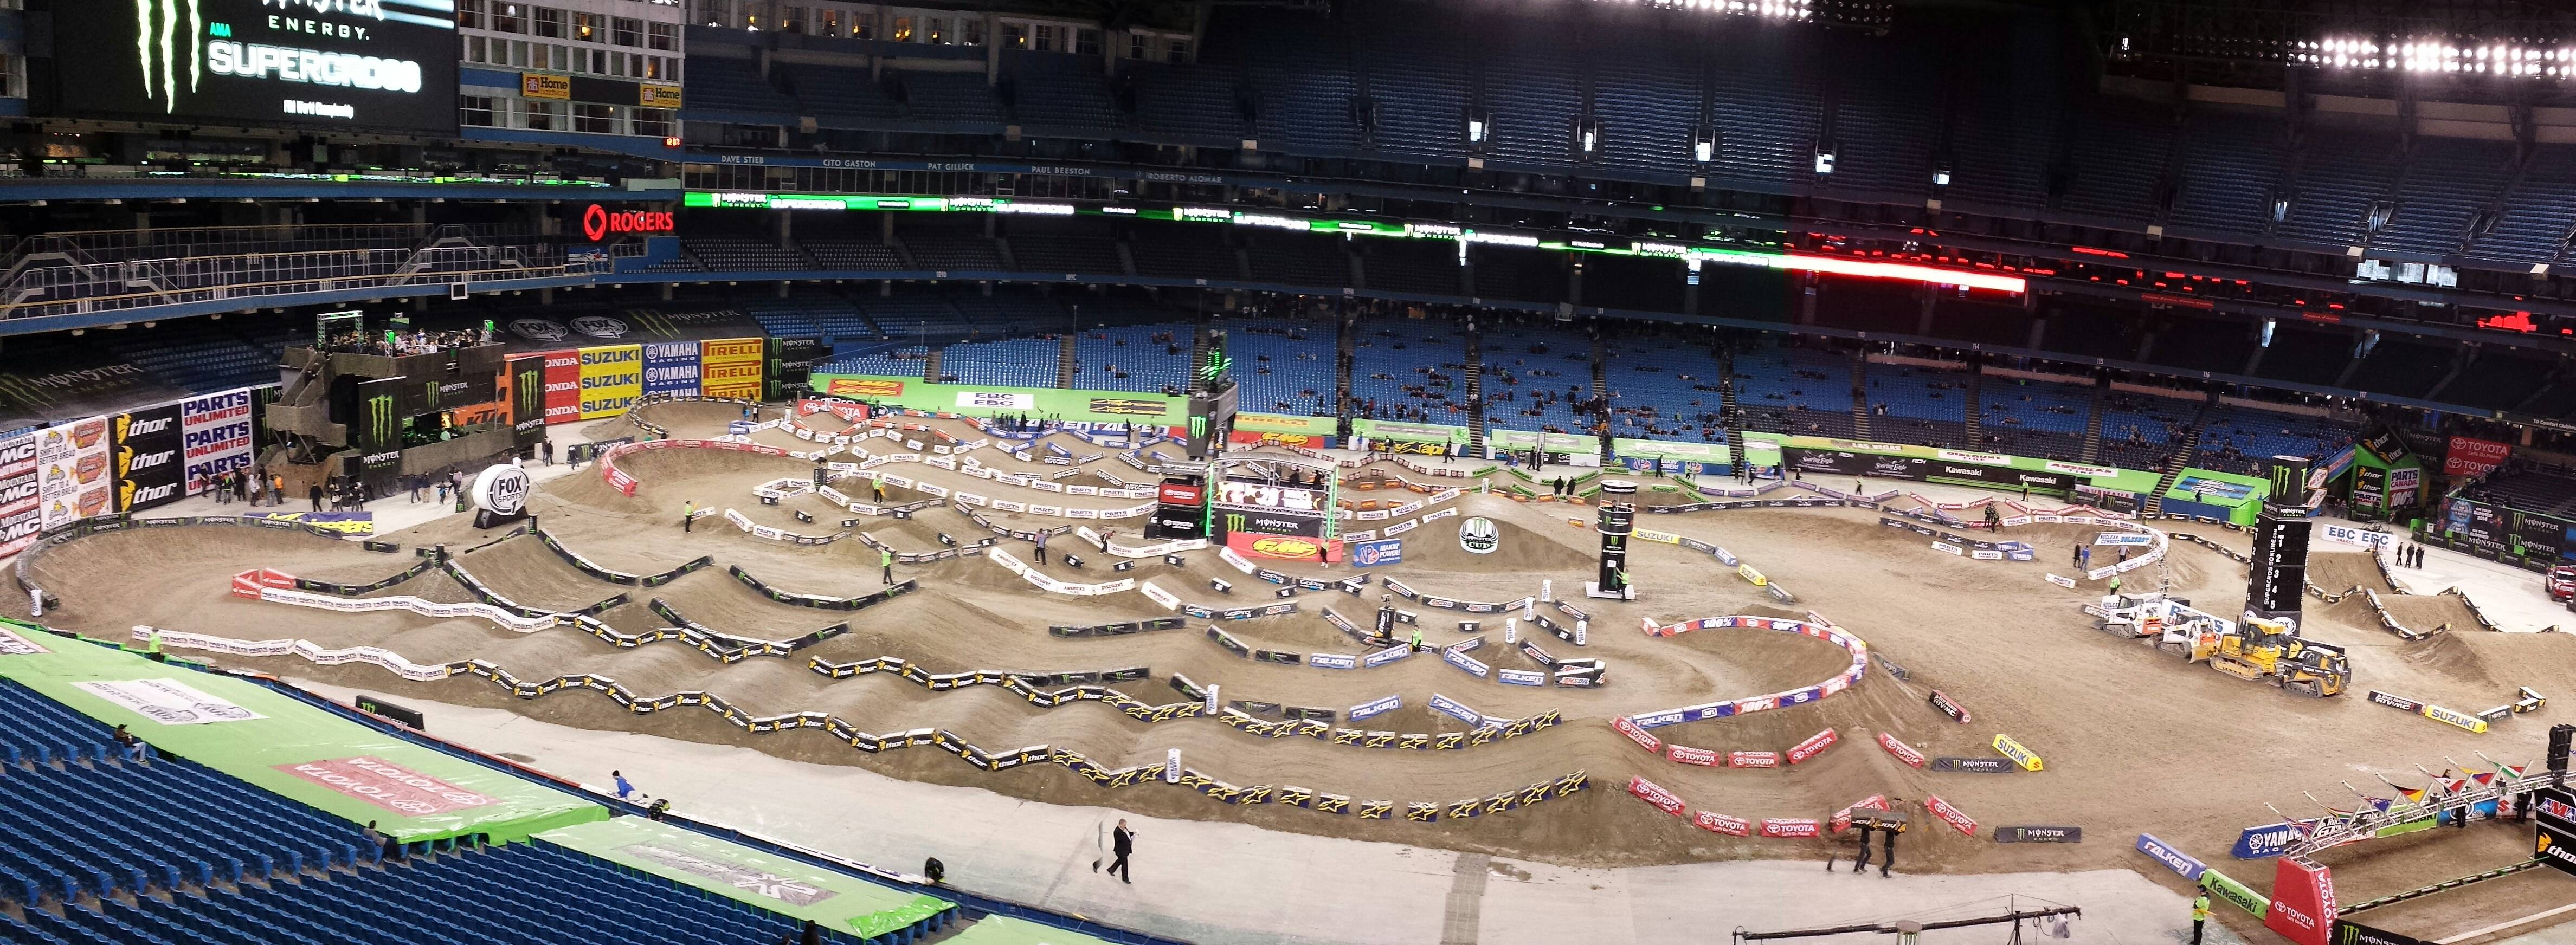 Picture of Supercross track in Toronto